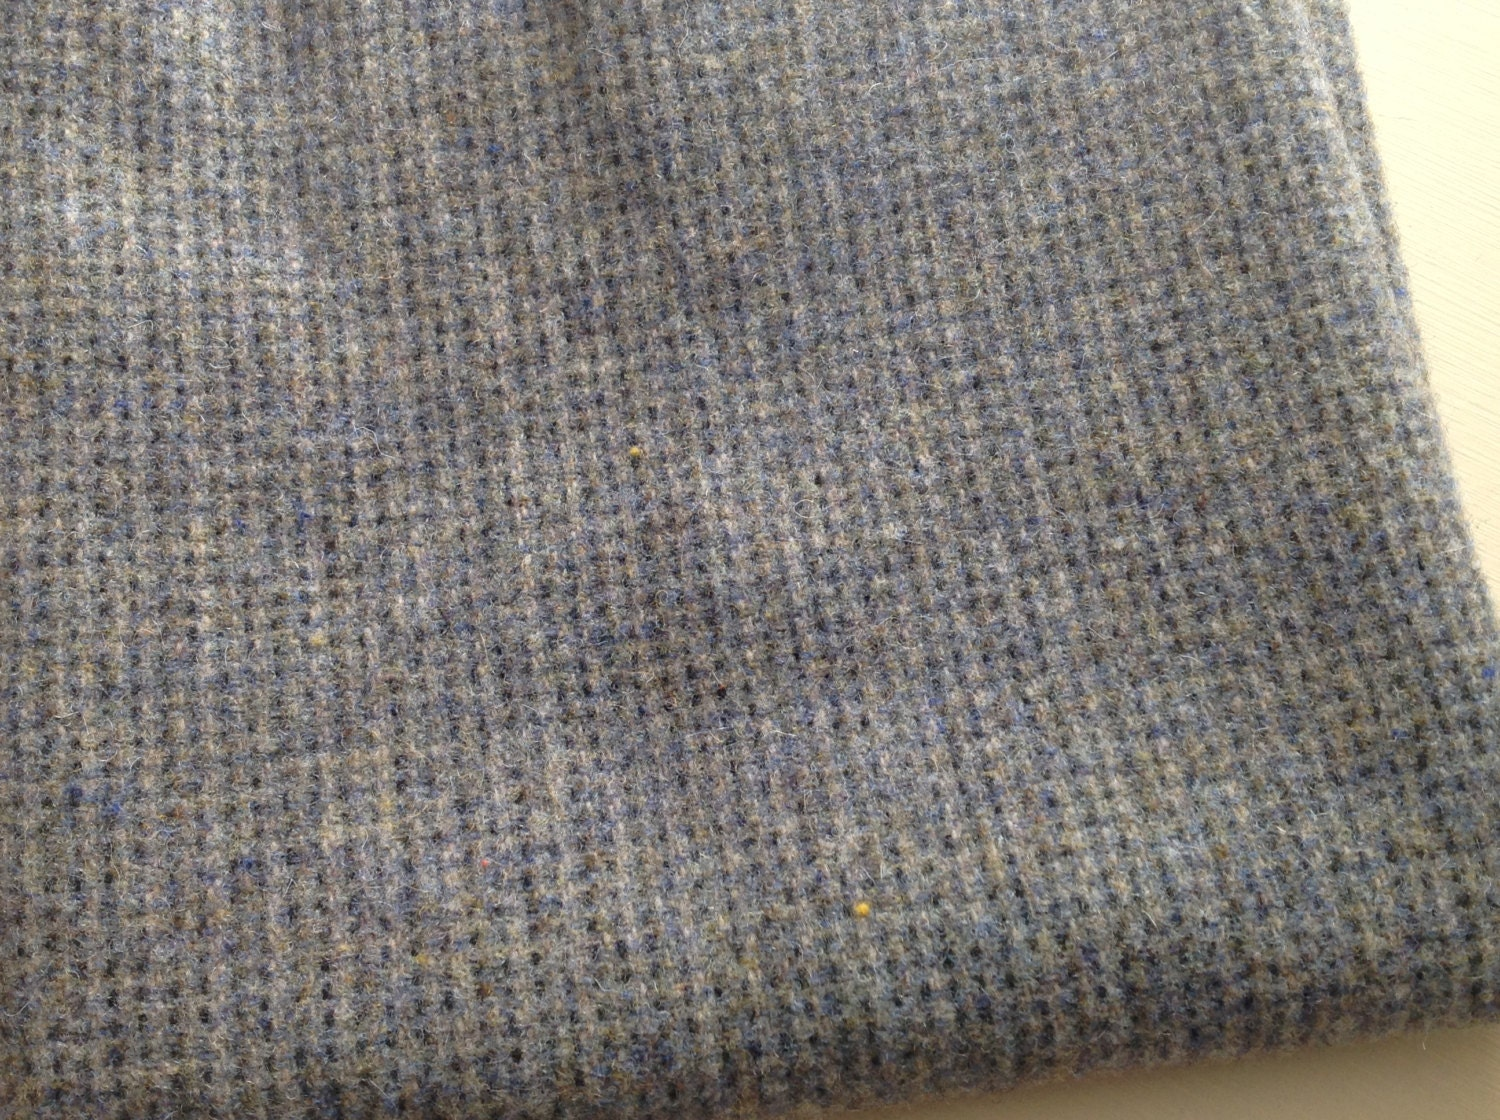 Steely Gray Blue Wool Fabric For Rug Hooking And Applique